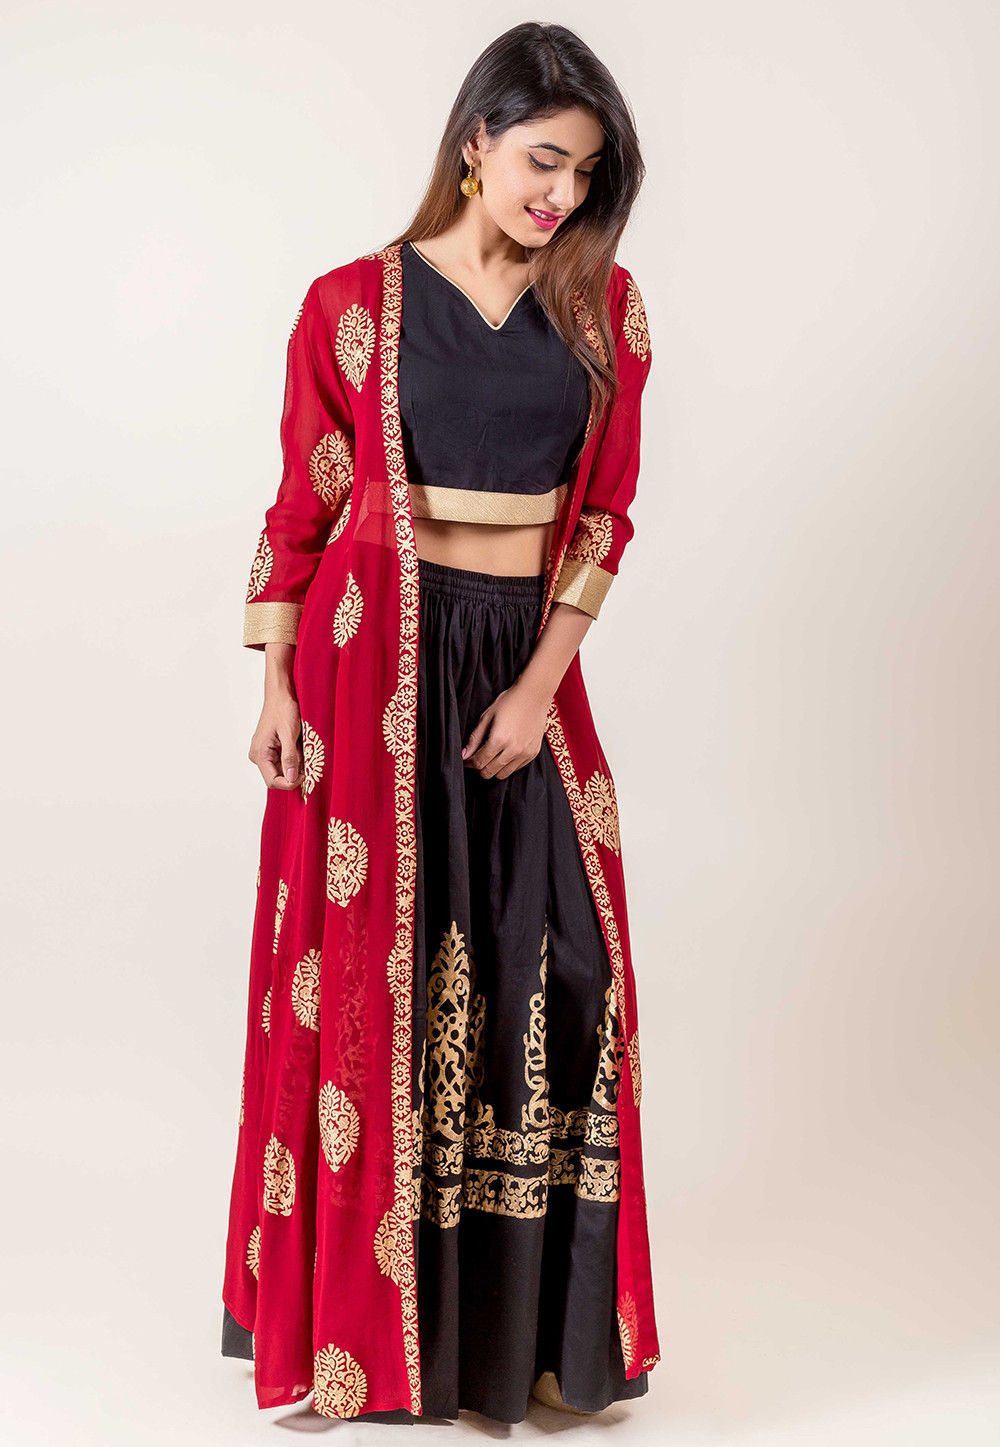 f4a0c70ca31 ... Block Printed Cotton Crop Top Jacket Set in Black and Maroon. Zoom.  View Similar